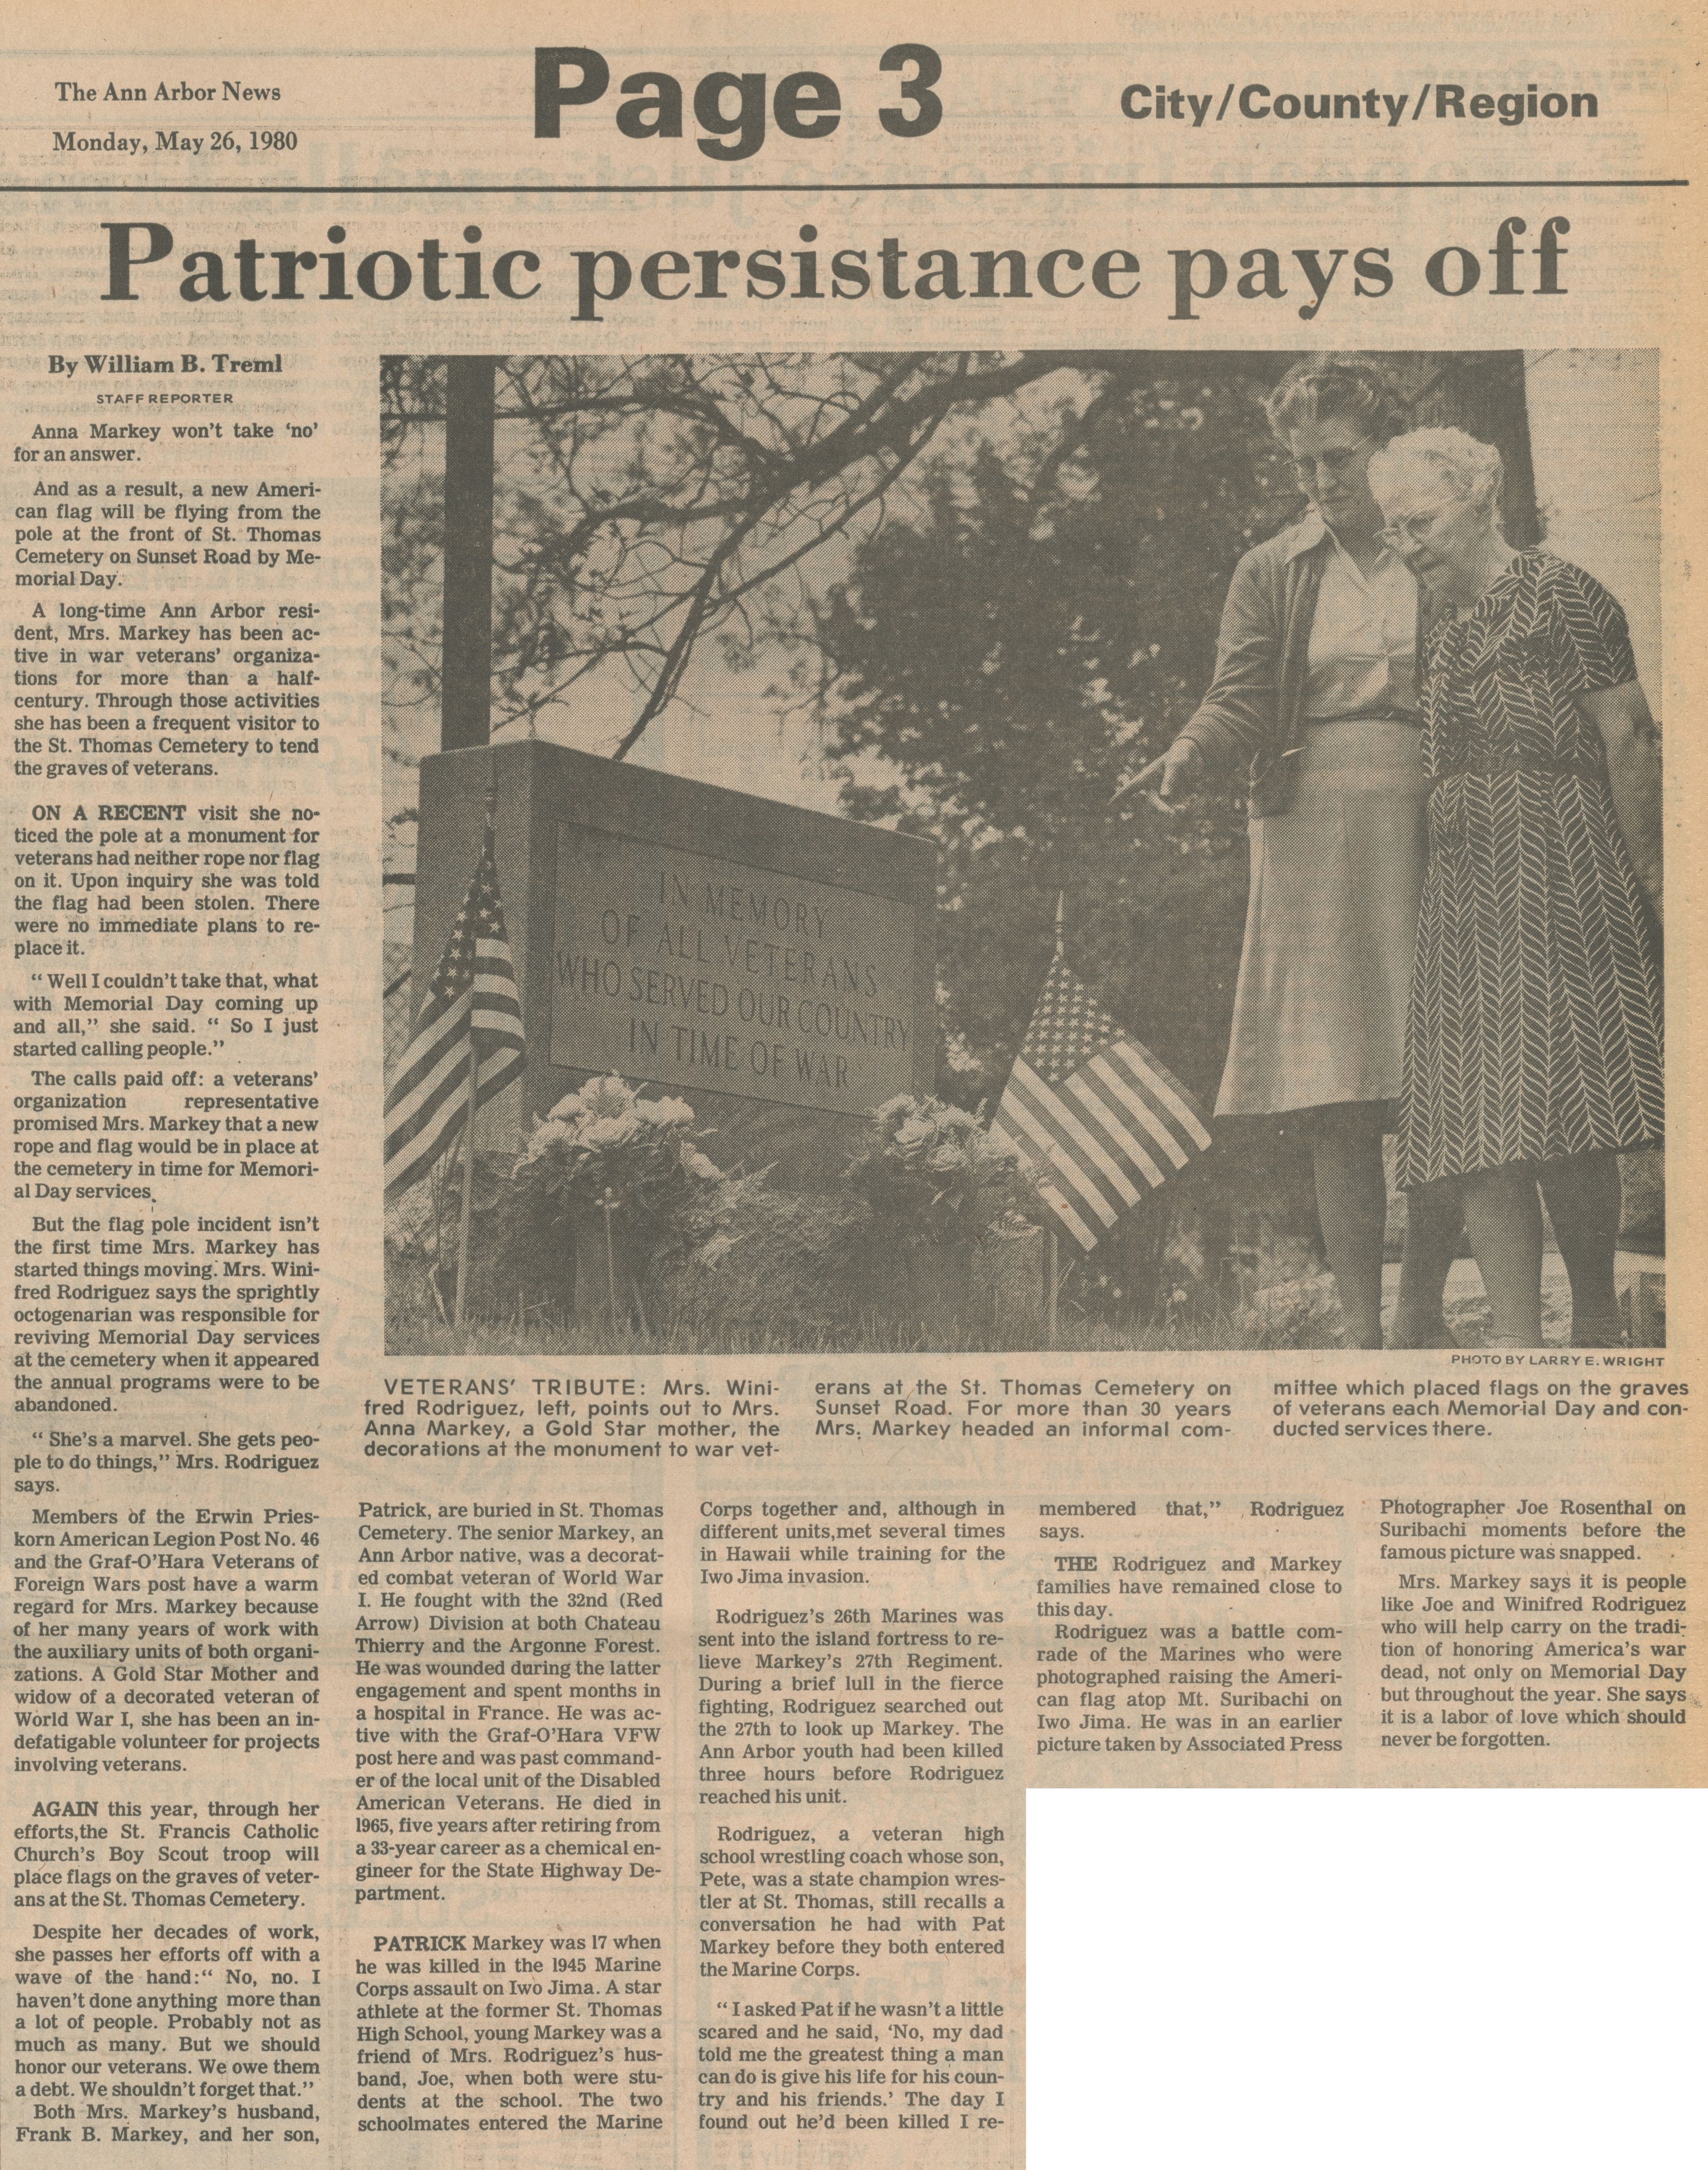 Patriotic persistance pays off image